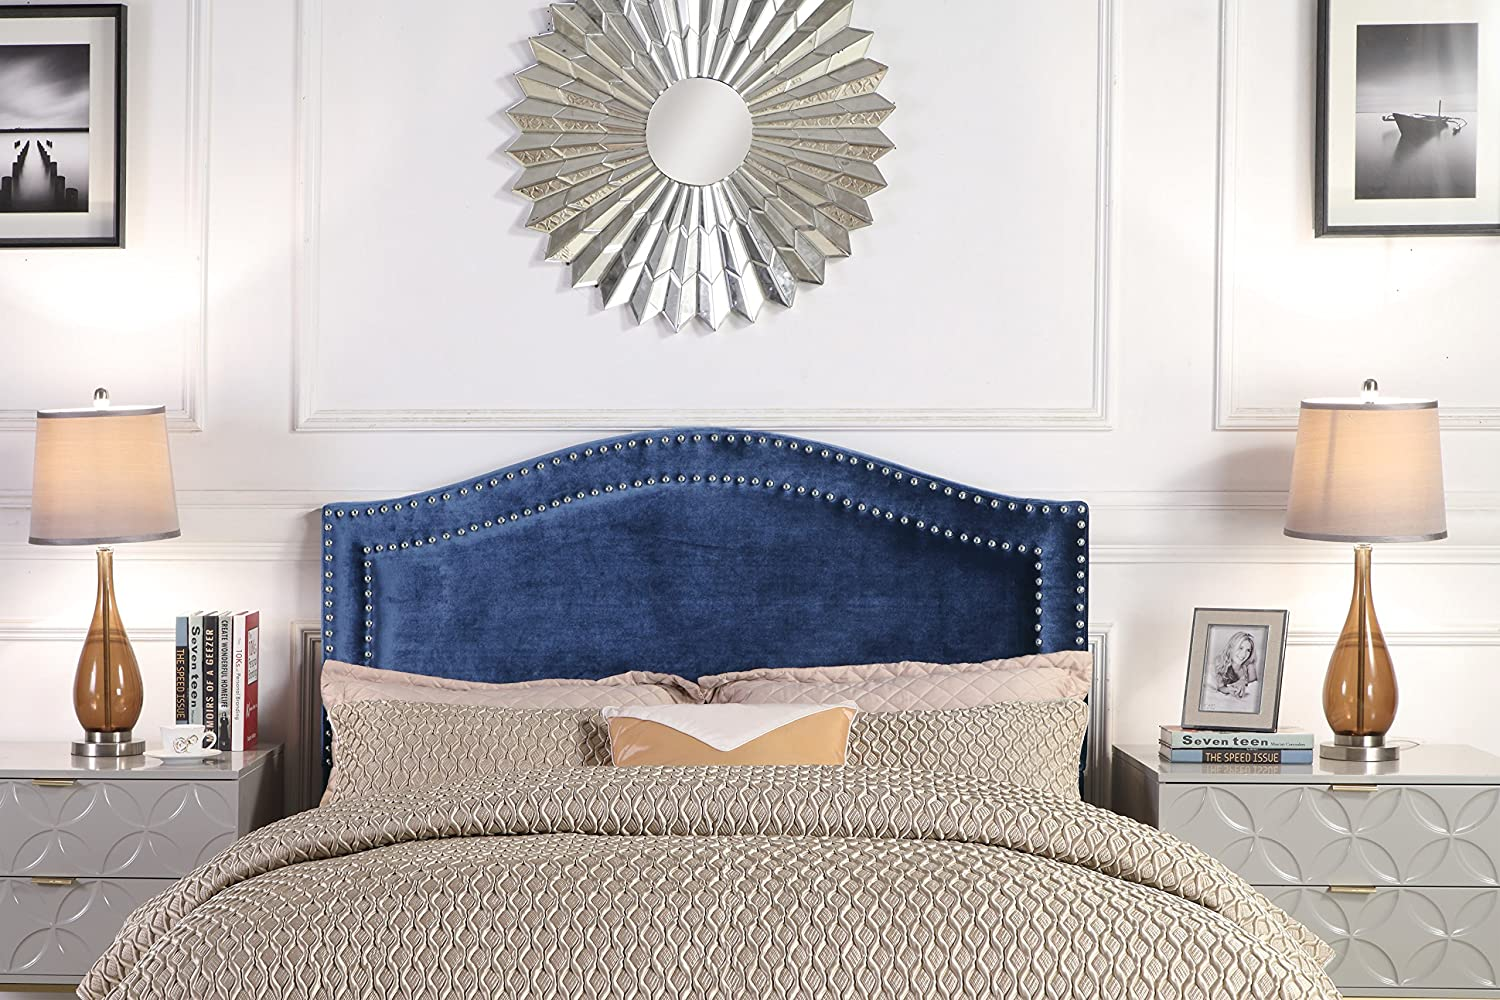 Iconic Home FHB9042-AN Tal. Headboard Velvet Upholstered Double Row Silver Nailhead Trim Modern Transitional, King, Navy